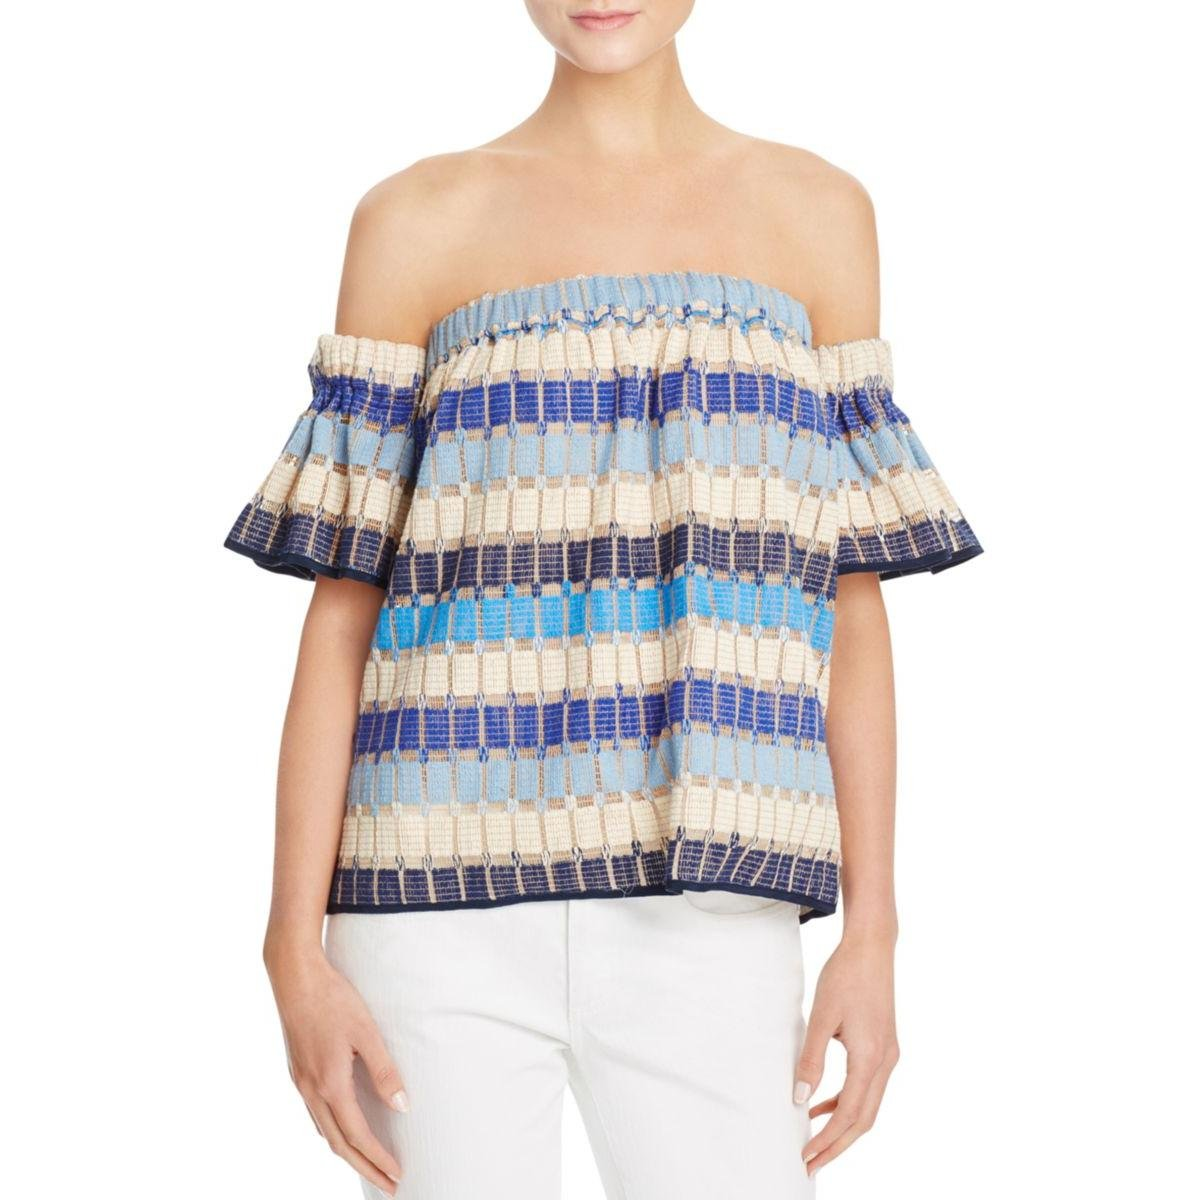 Milly Womens Knit Off The Shoulder Casual Top Blue S by MILLY (Image #1)